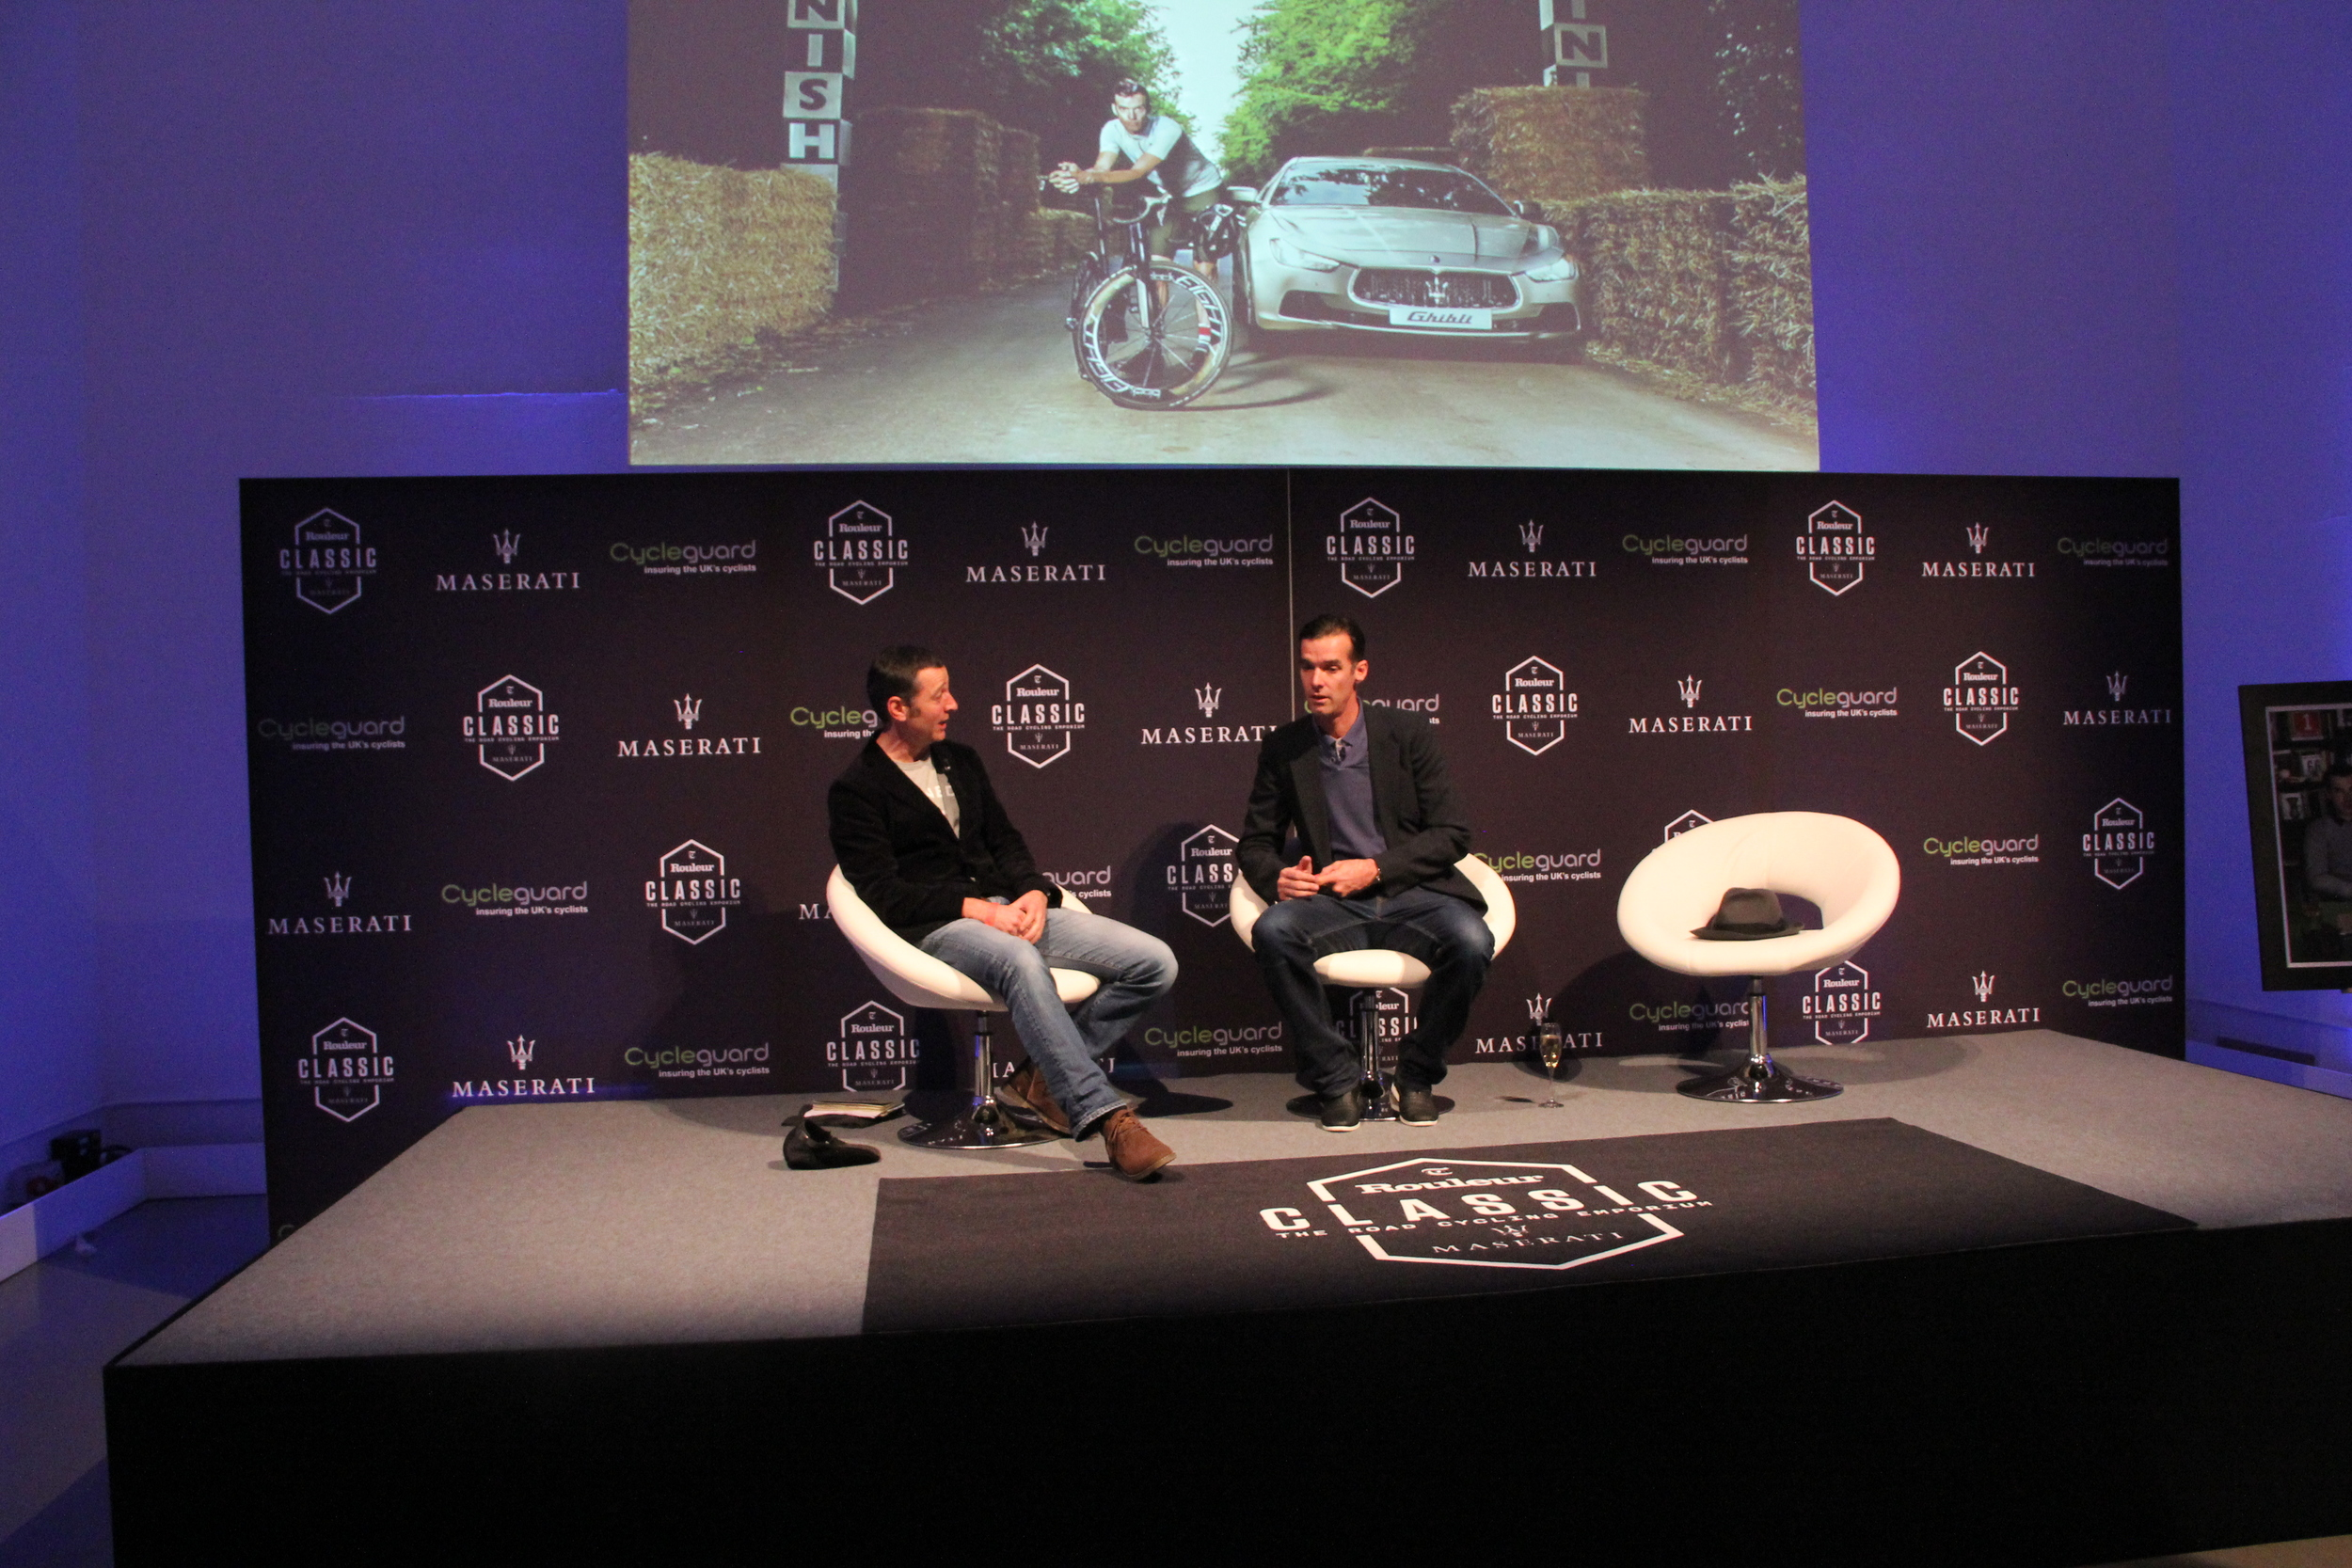 Boulting interviews David Millar at the Rouleur Classic event last year